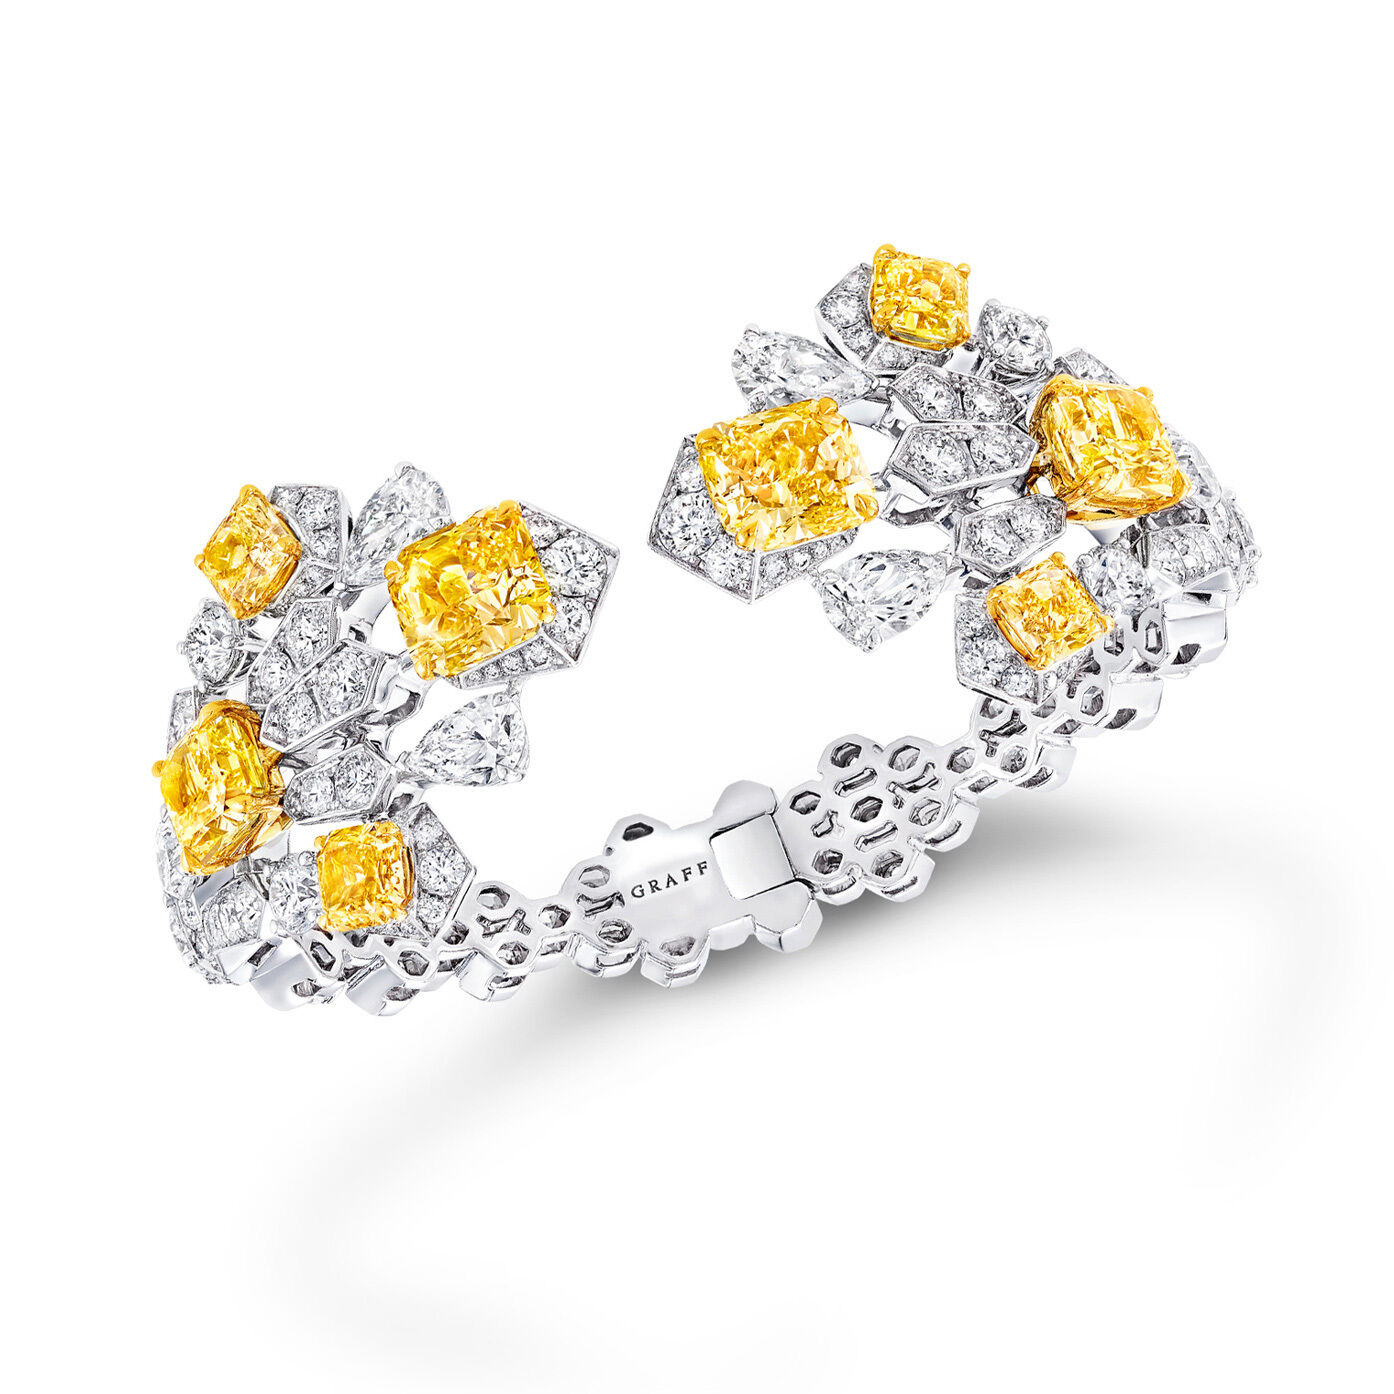 Yellow and white diamond high jewellery Night Moon earrings from the Graff Tribal collection